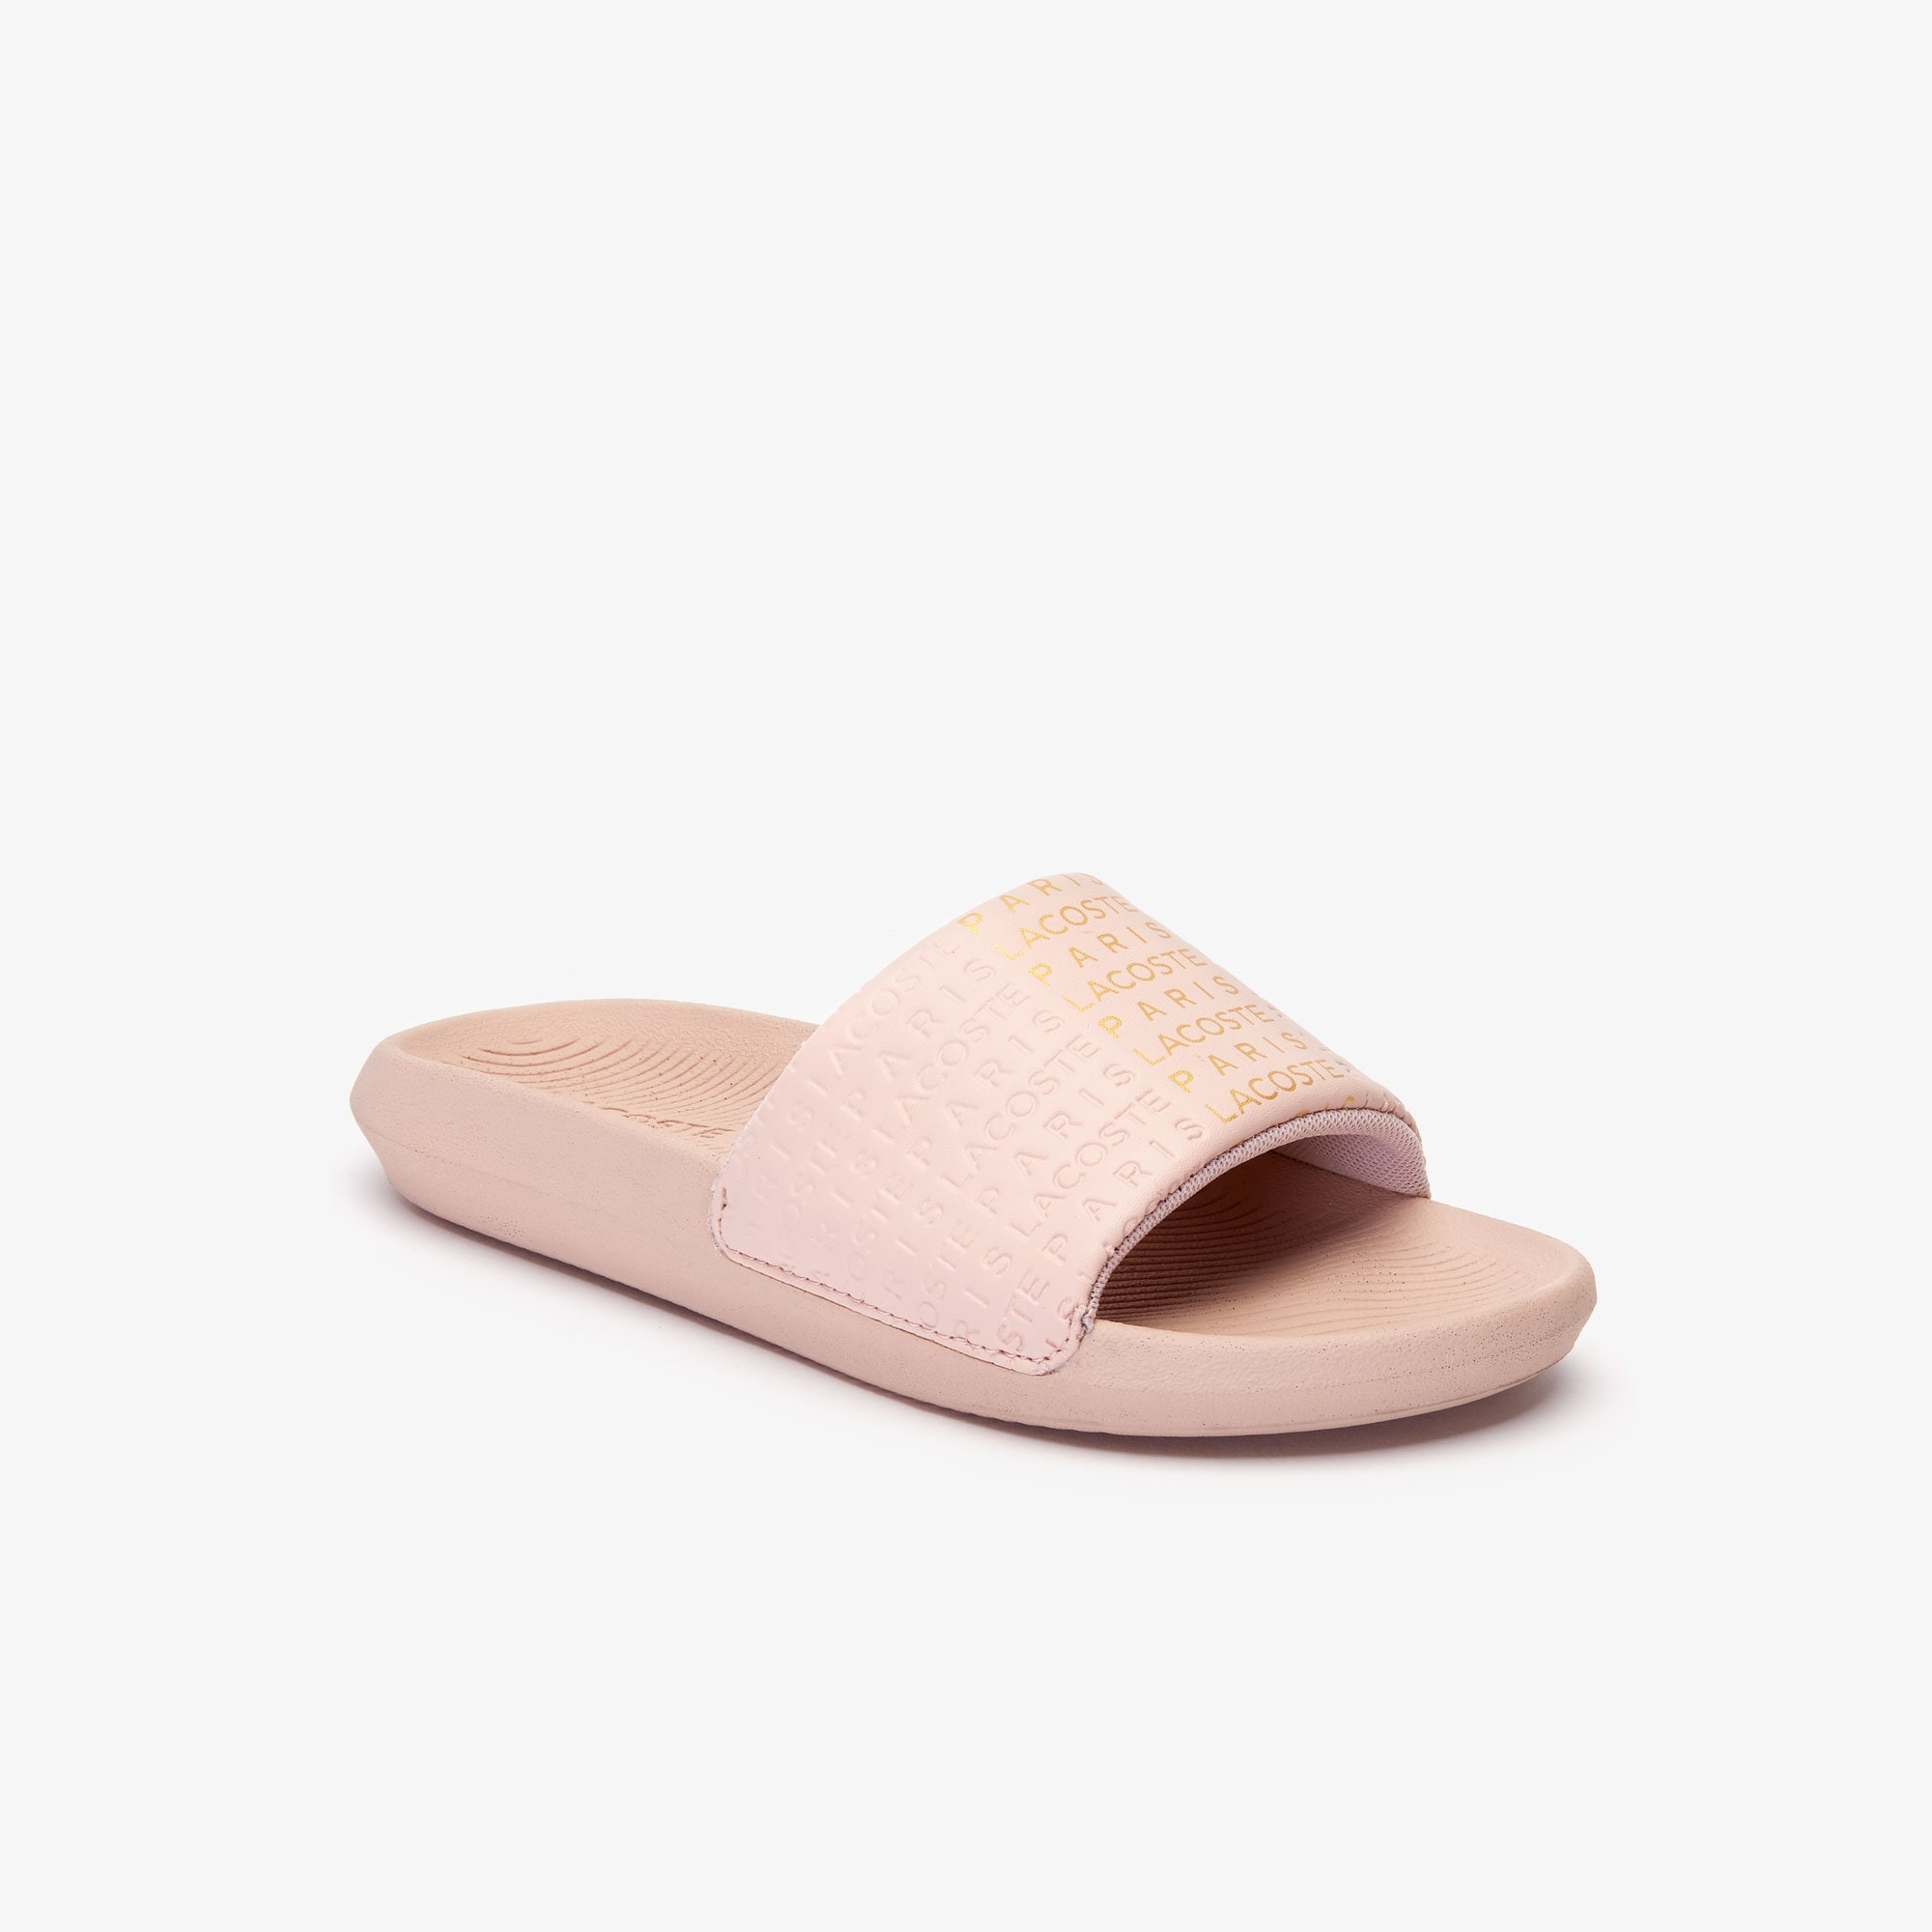 Lacoste Jewelry Women's 'Lacoste Paris' Slides